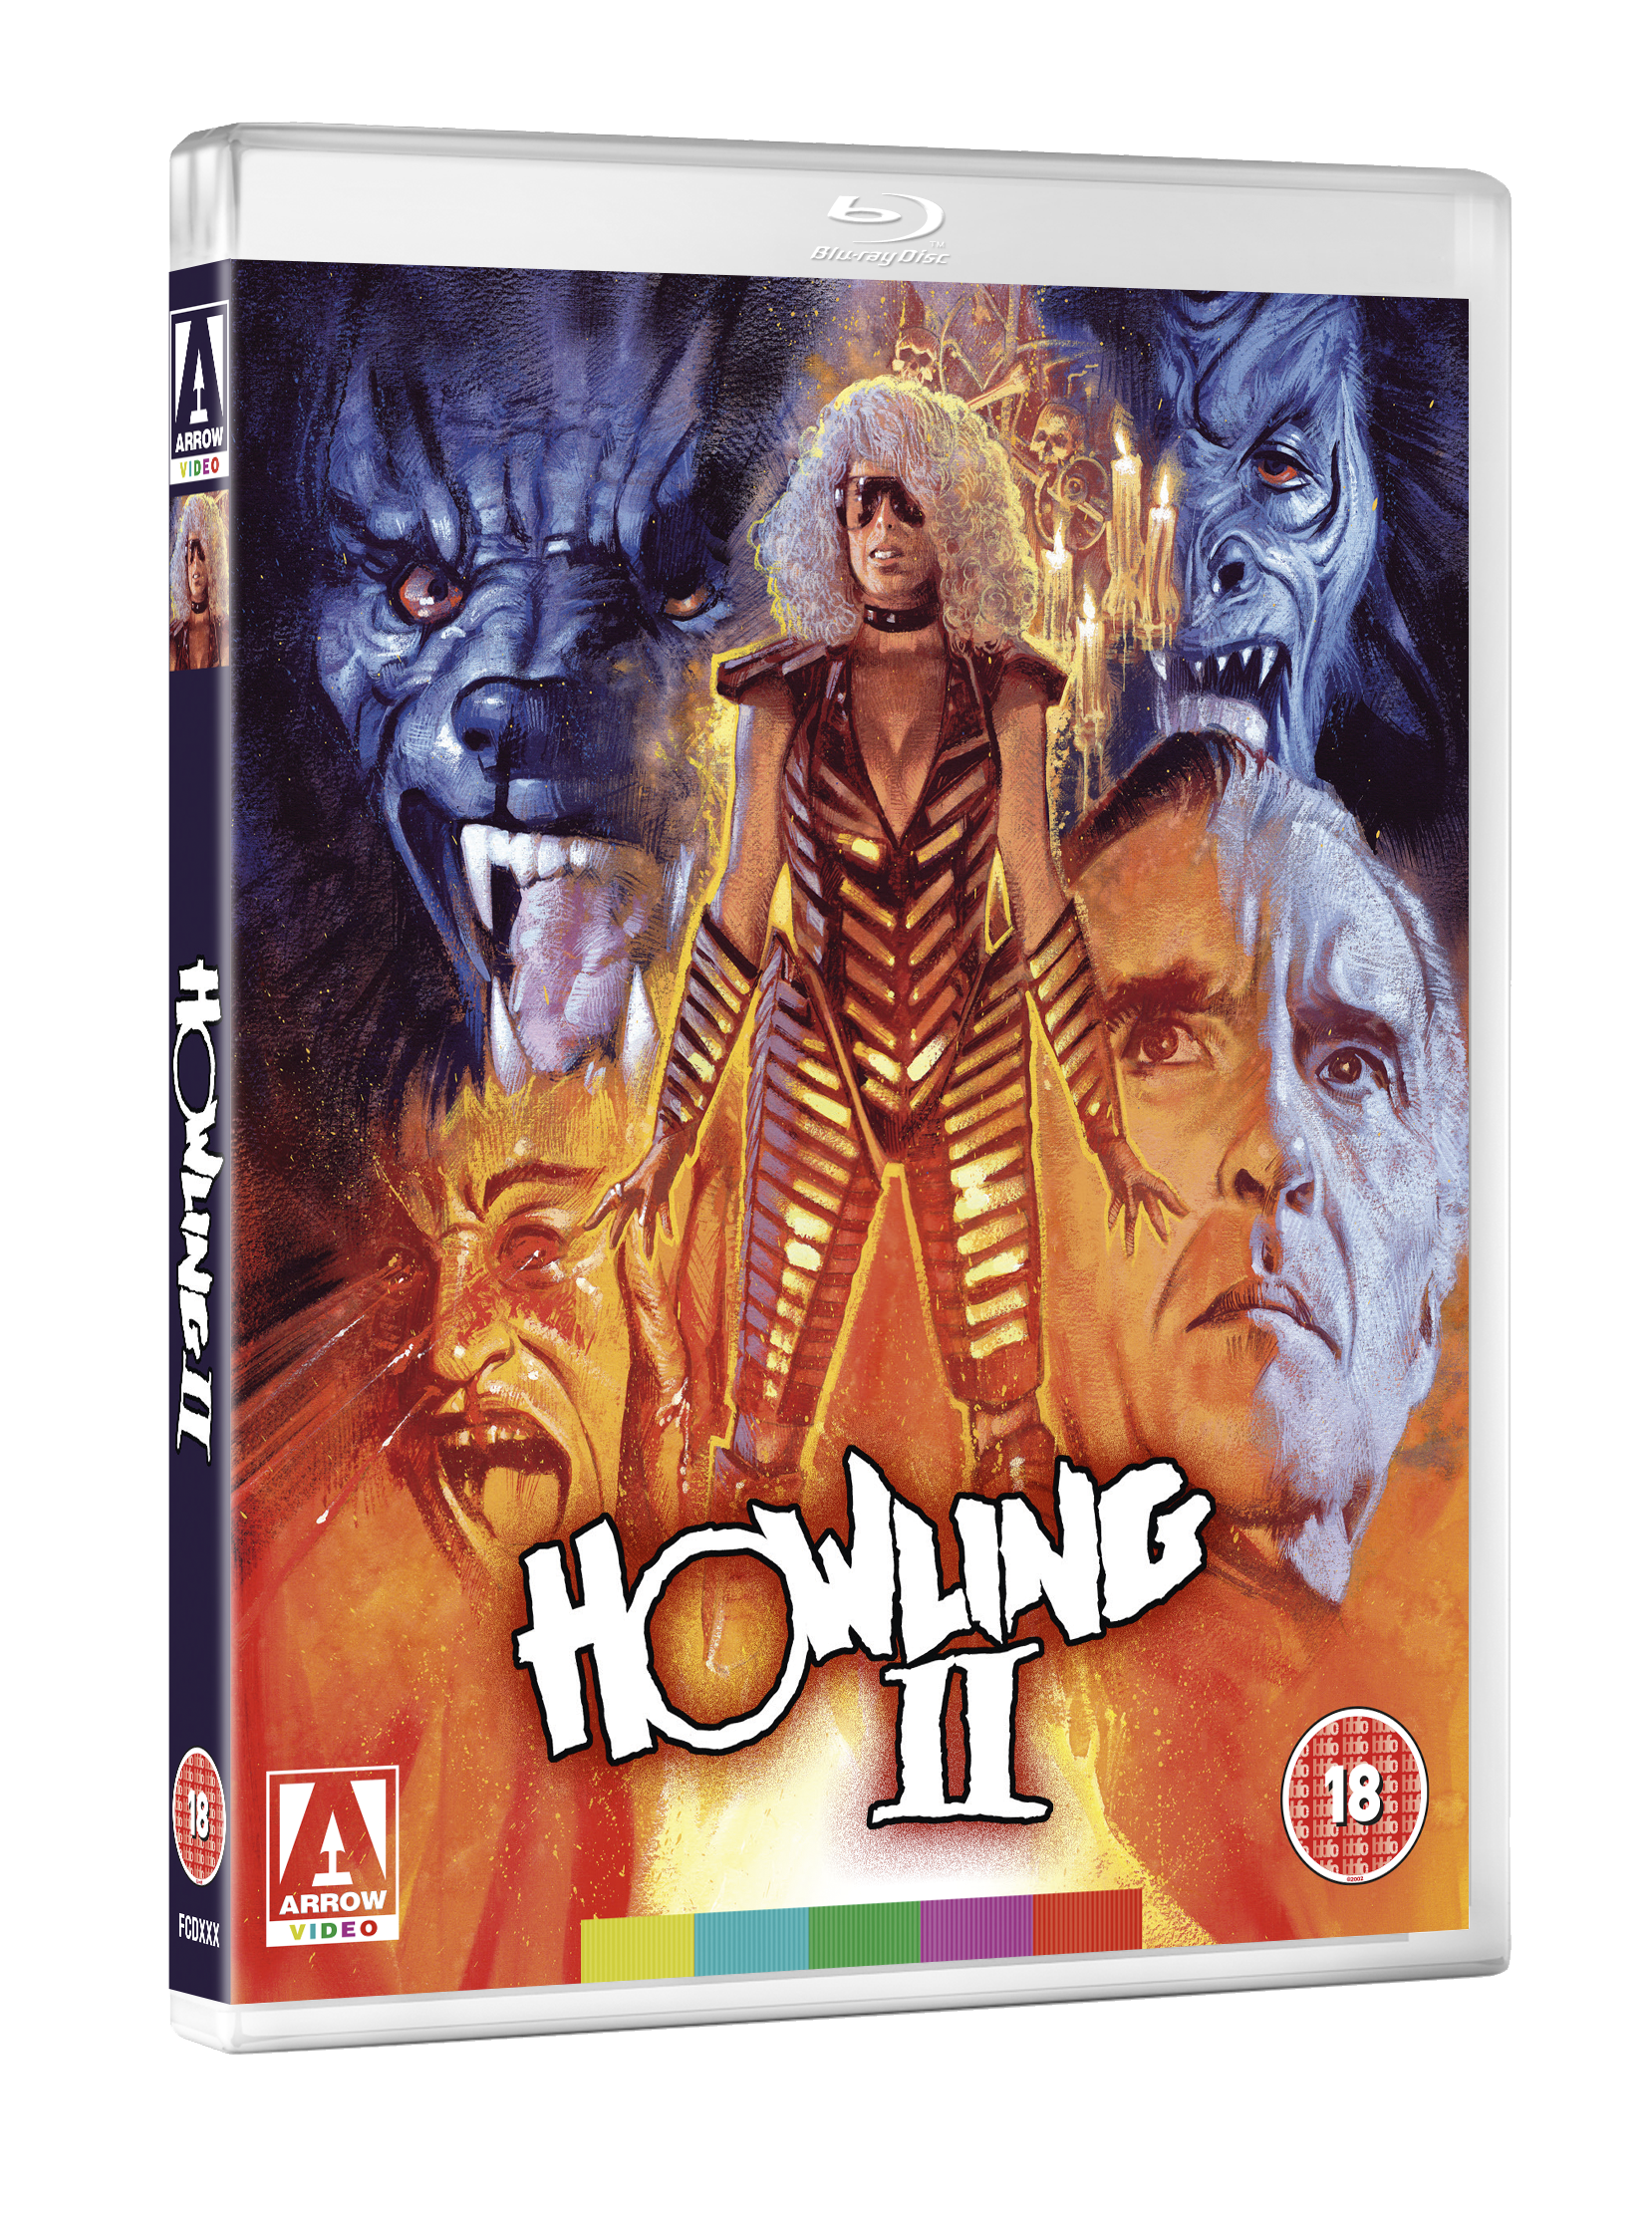 HOWLING 2 3D BD%5B4%5D Arrow Video announce November releases